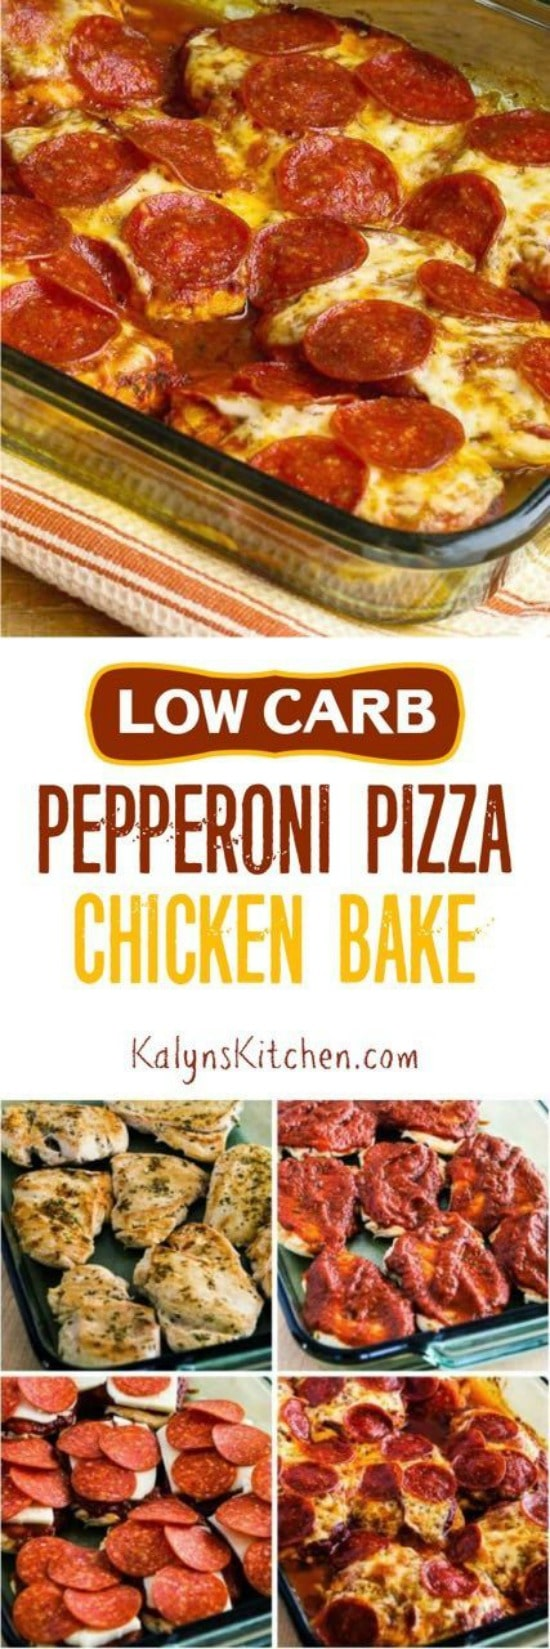 """Low-Carb Pepperoni Pizza Chicken Bake [found on KalynsKitchen.com]"""" src=""""http://getyouhealth.com/wp-content/uploads/images/articles/low_carb_recipes/LowCarb_PizzaChickencopy.jpg"""" alt=""""Low-Carb Pepperoni Pizza Chicken Bake found on KalynsKitchen.com"""